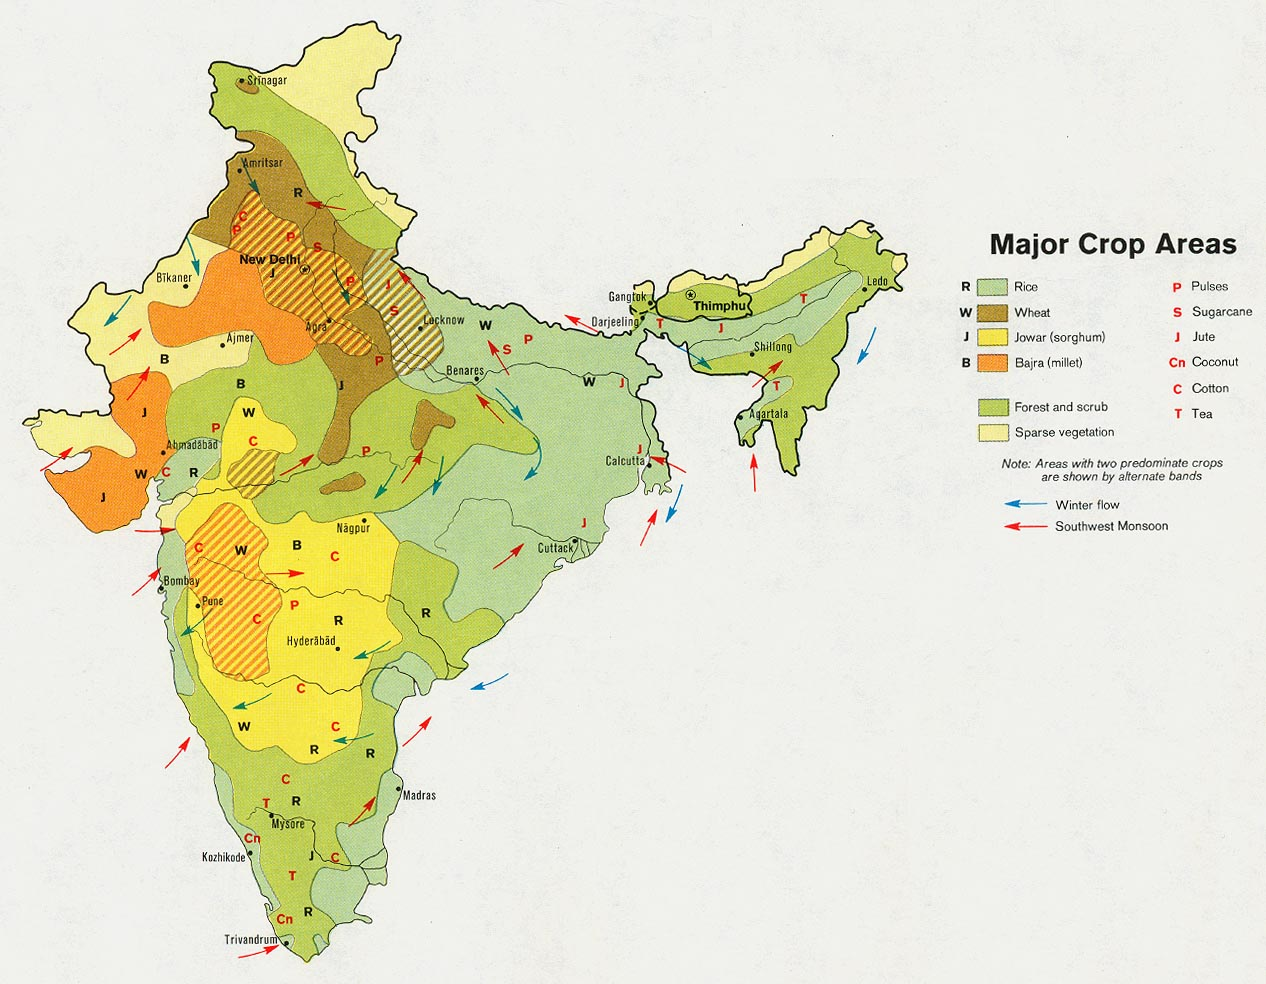 Map of India Major Crop Areas